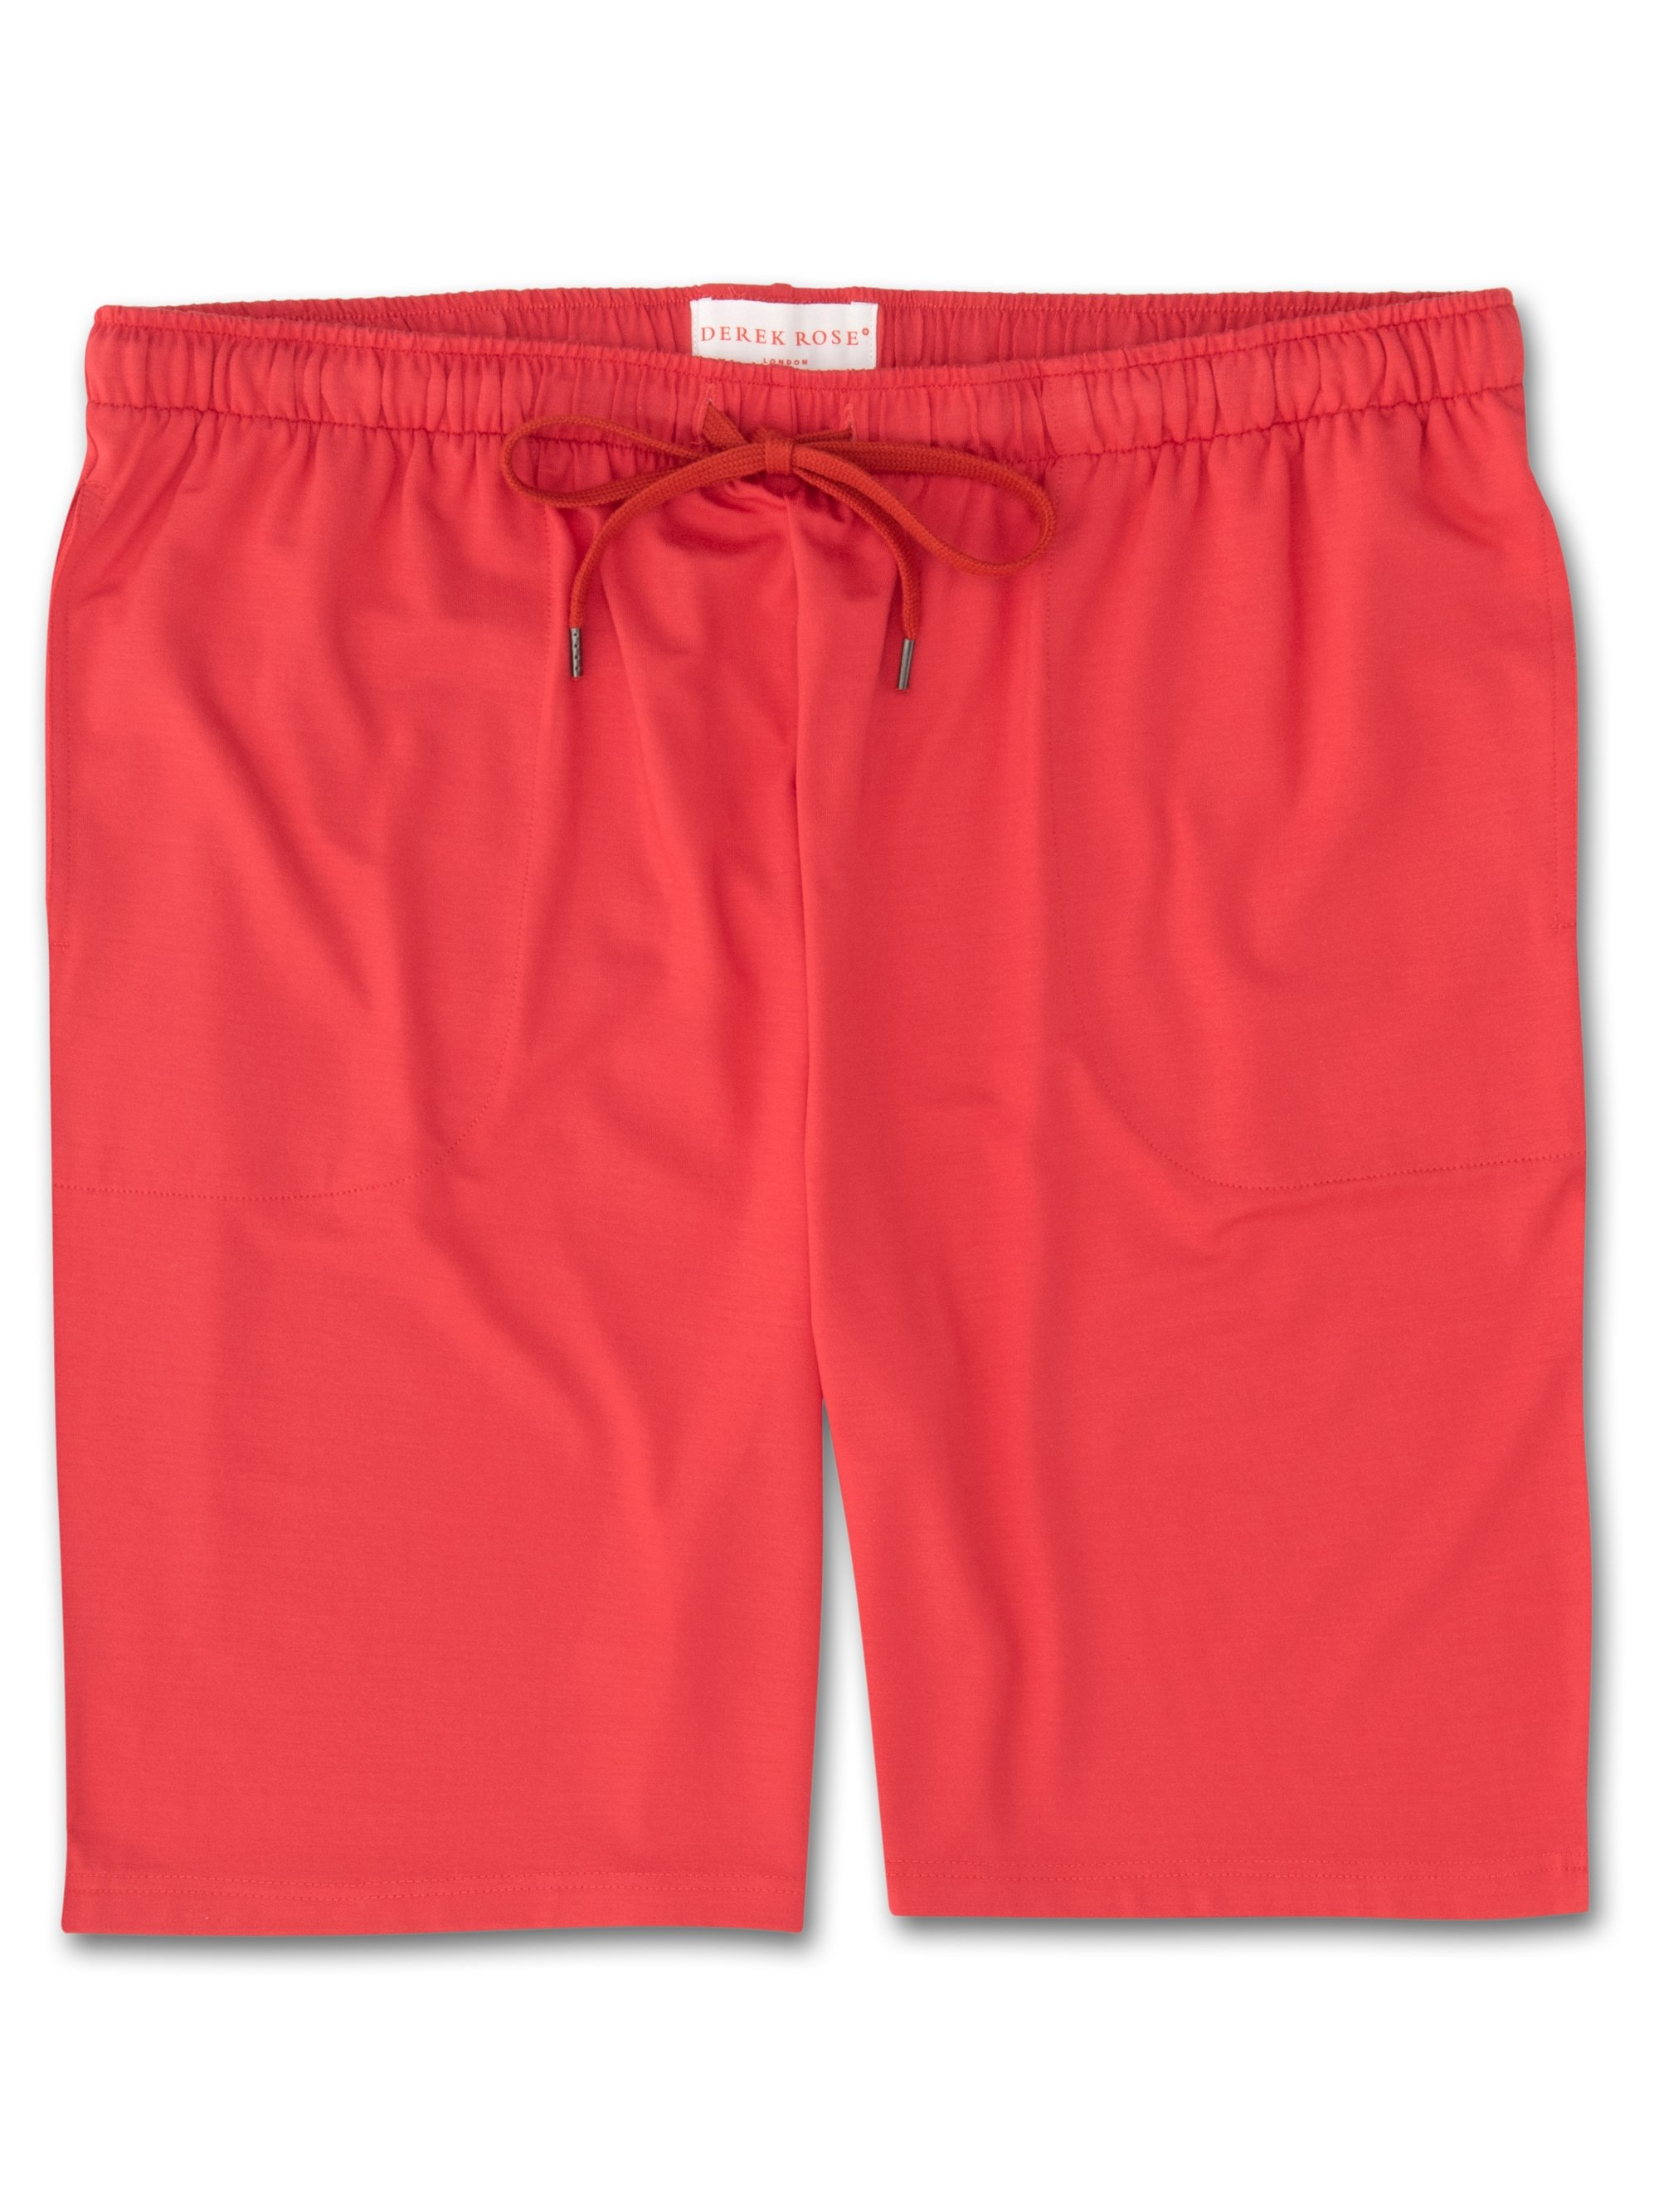 Men's Jersey Shorts Basel 6 Micro Modal Stretch Red